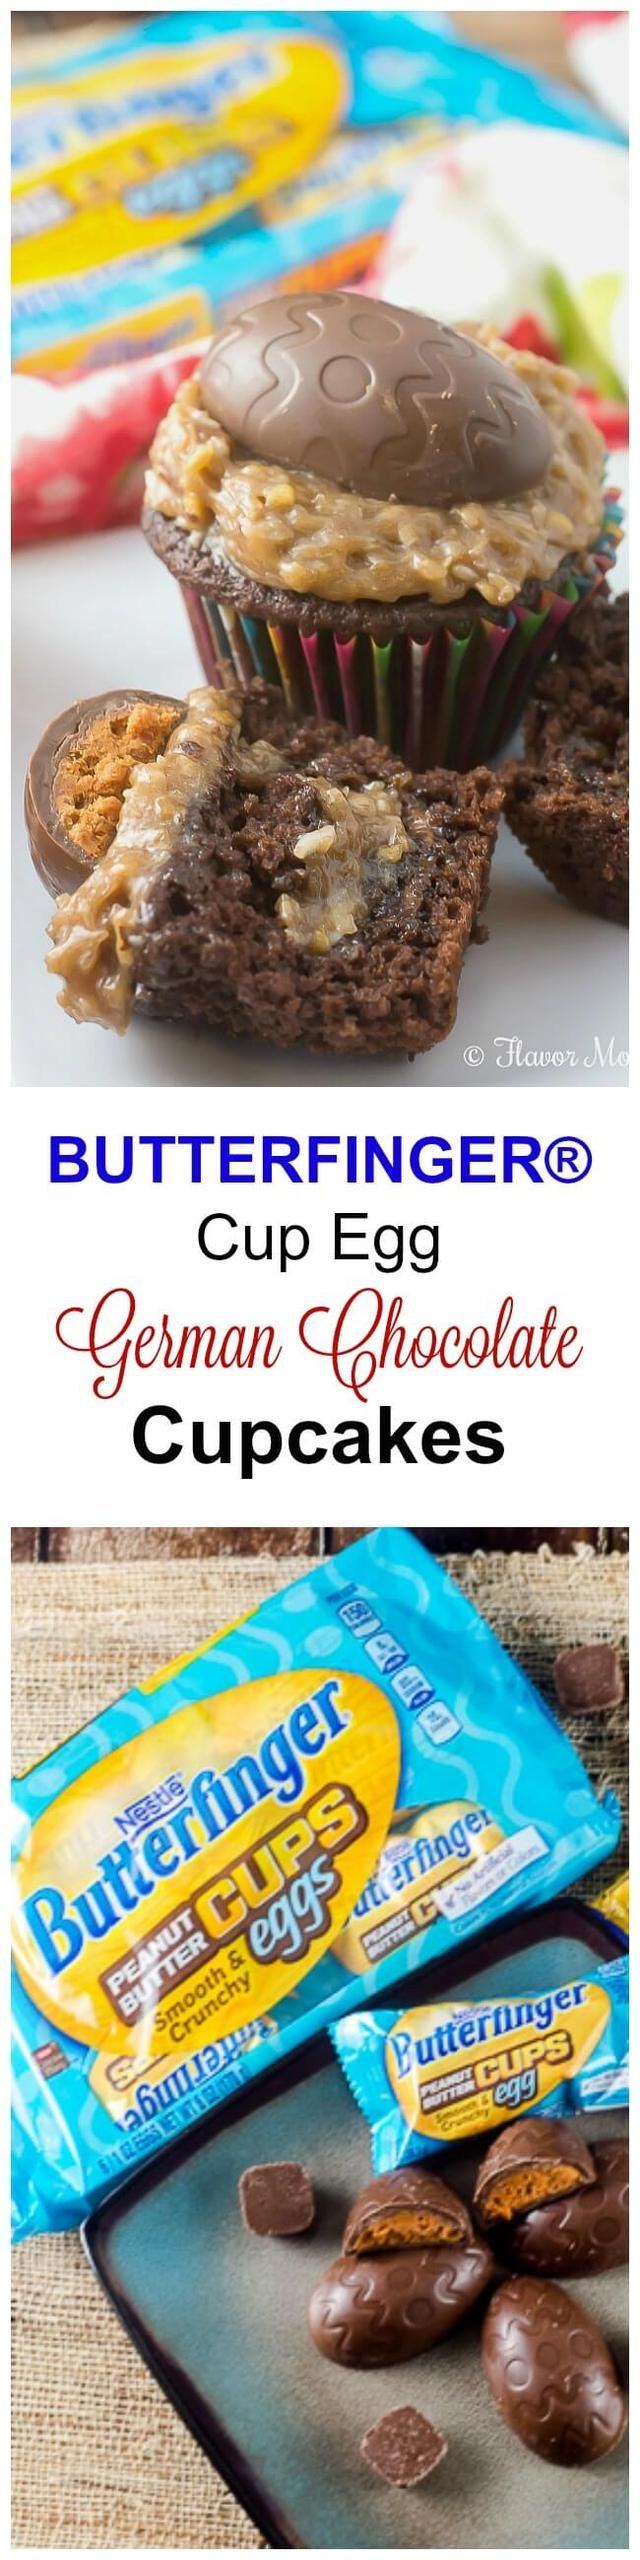 BUTTERFINGER® Cup Egg German Chocolate Cupcakes make fun treats for Easter.  #EggcellentTreats #ad @butterfinger